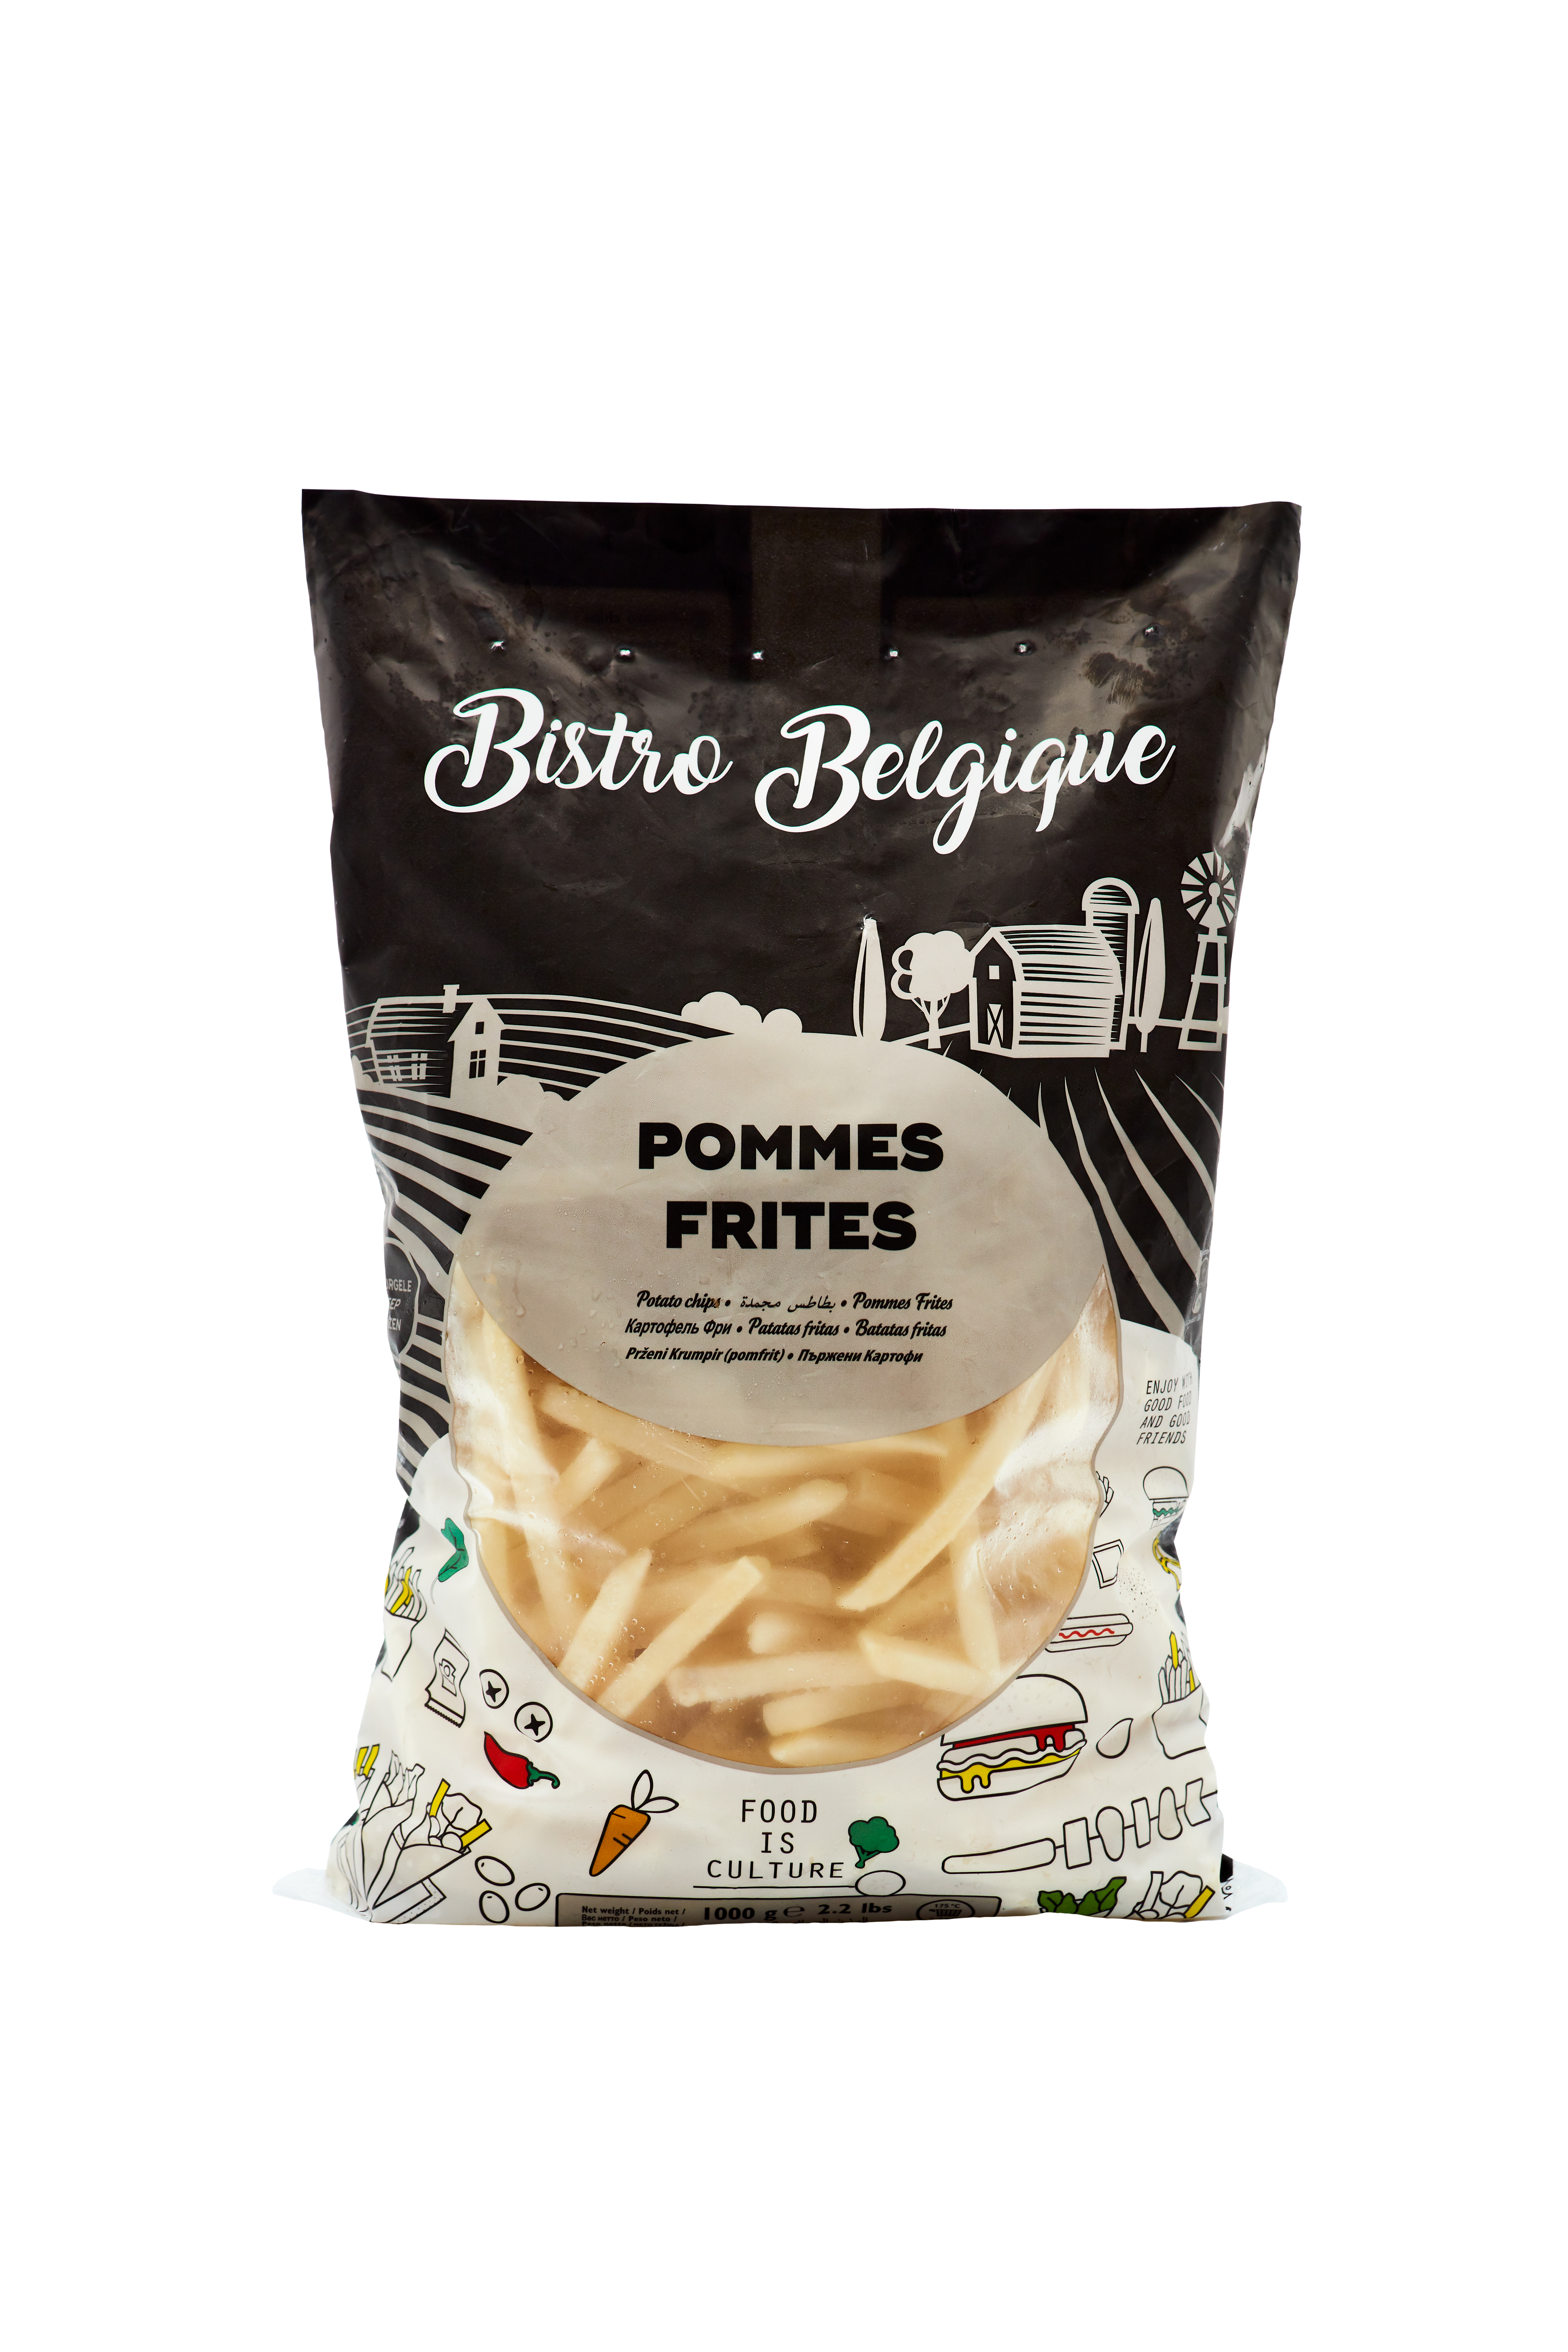 potato cubes packaging Bistro Belgique brand